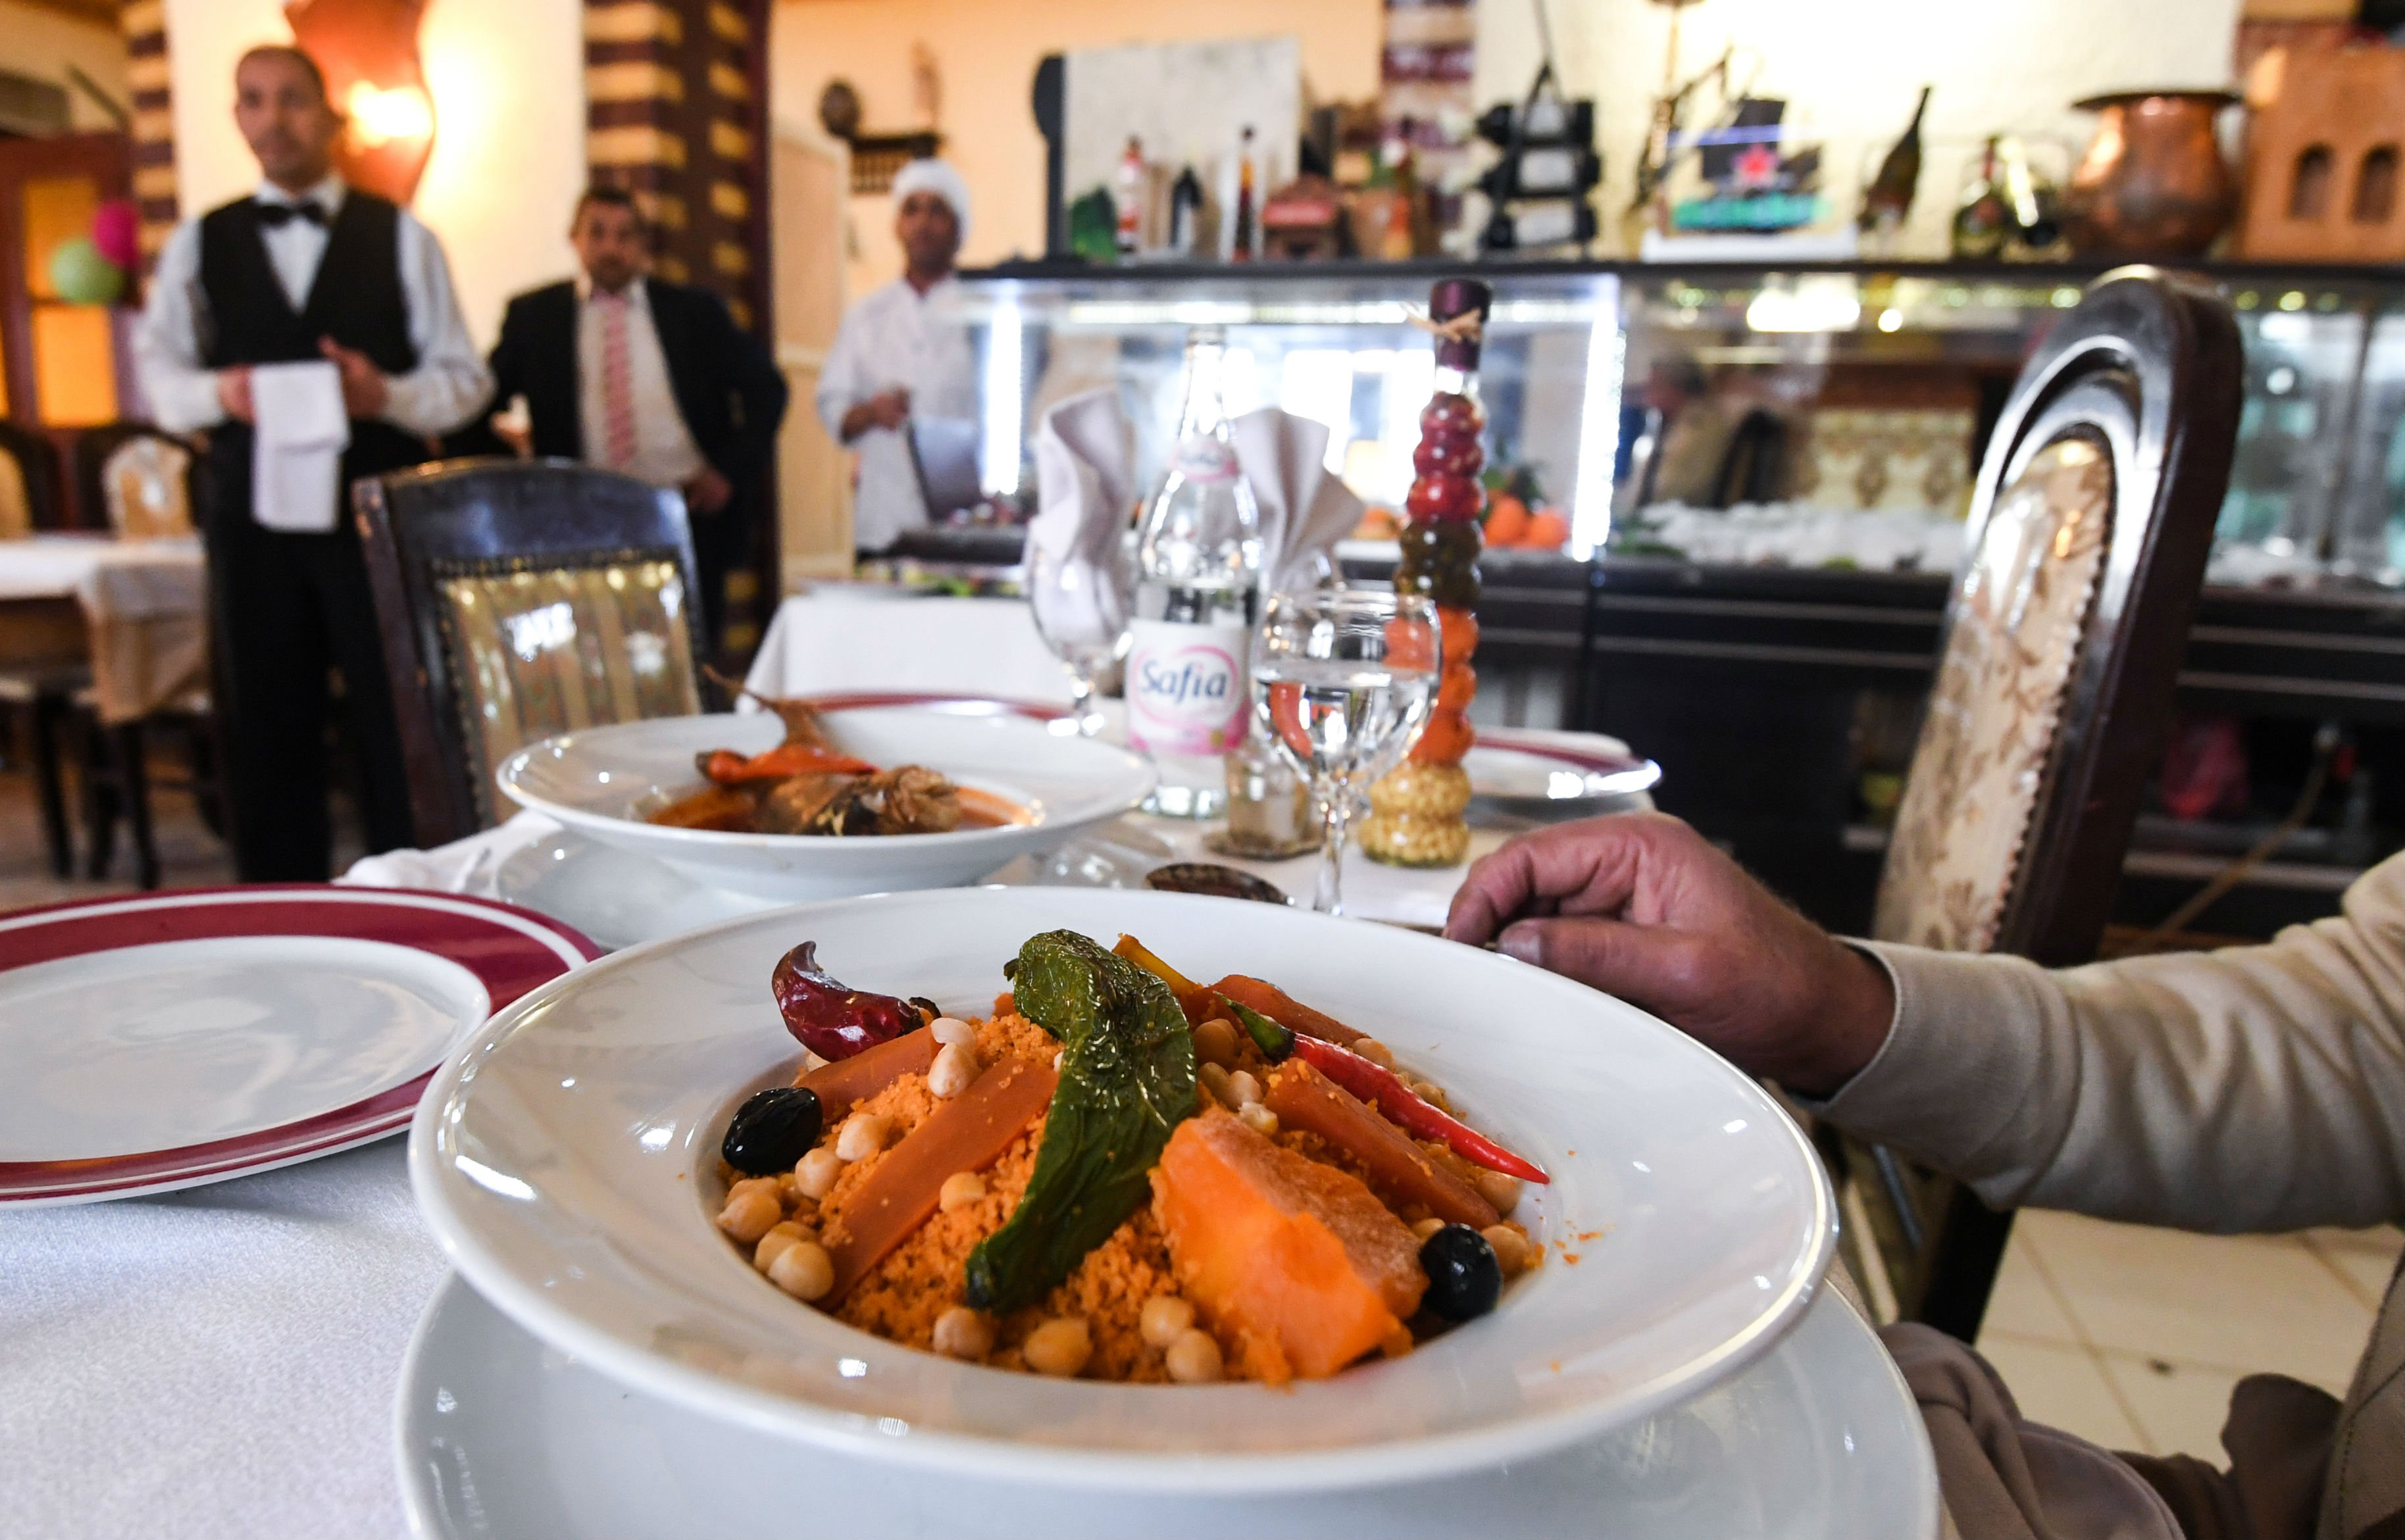 Patrons are served couscous dish at the restaurant L'Orient in Tunis in January 2018 (AFP)